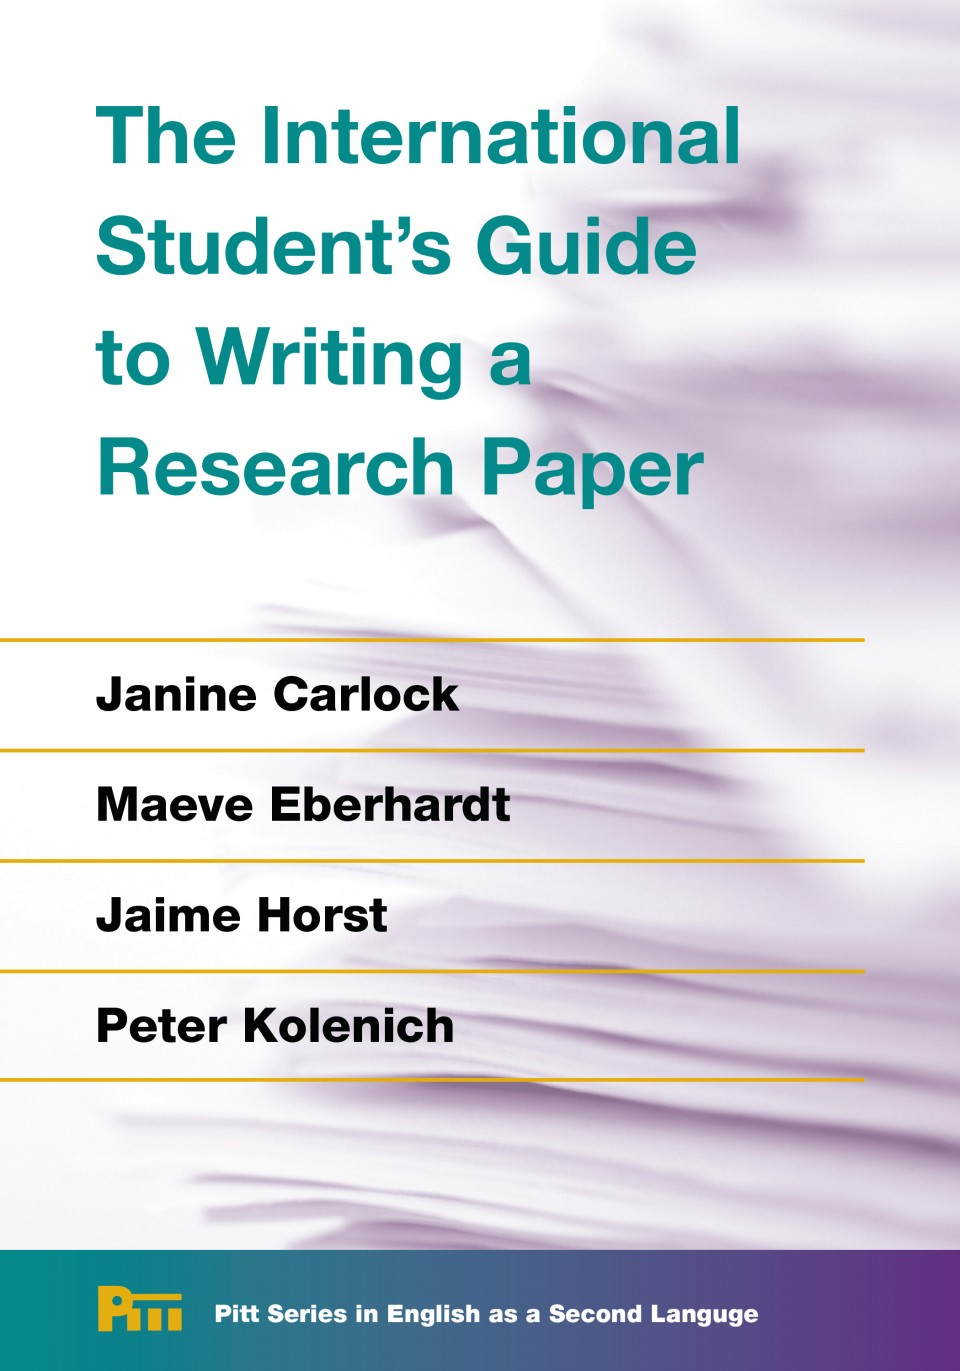 013 Writing The Research Paper Phenomenal Pdf How To Write A Outline Ppt Papers Complete Guide 16th Edition 960